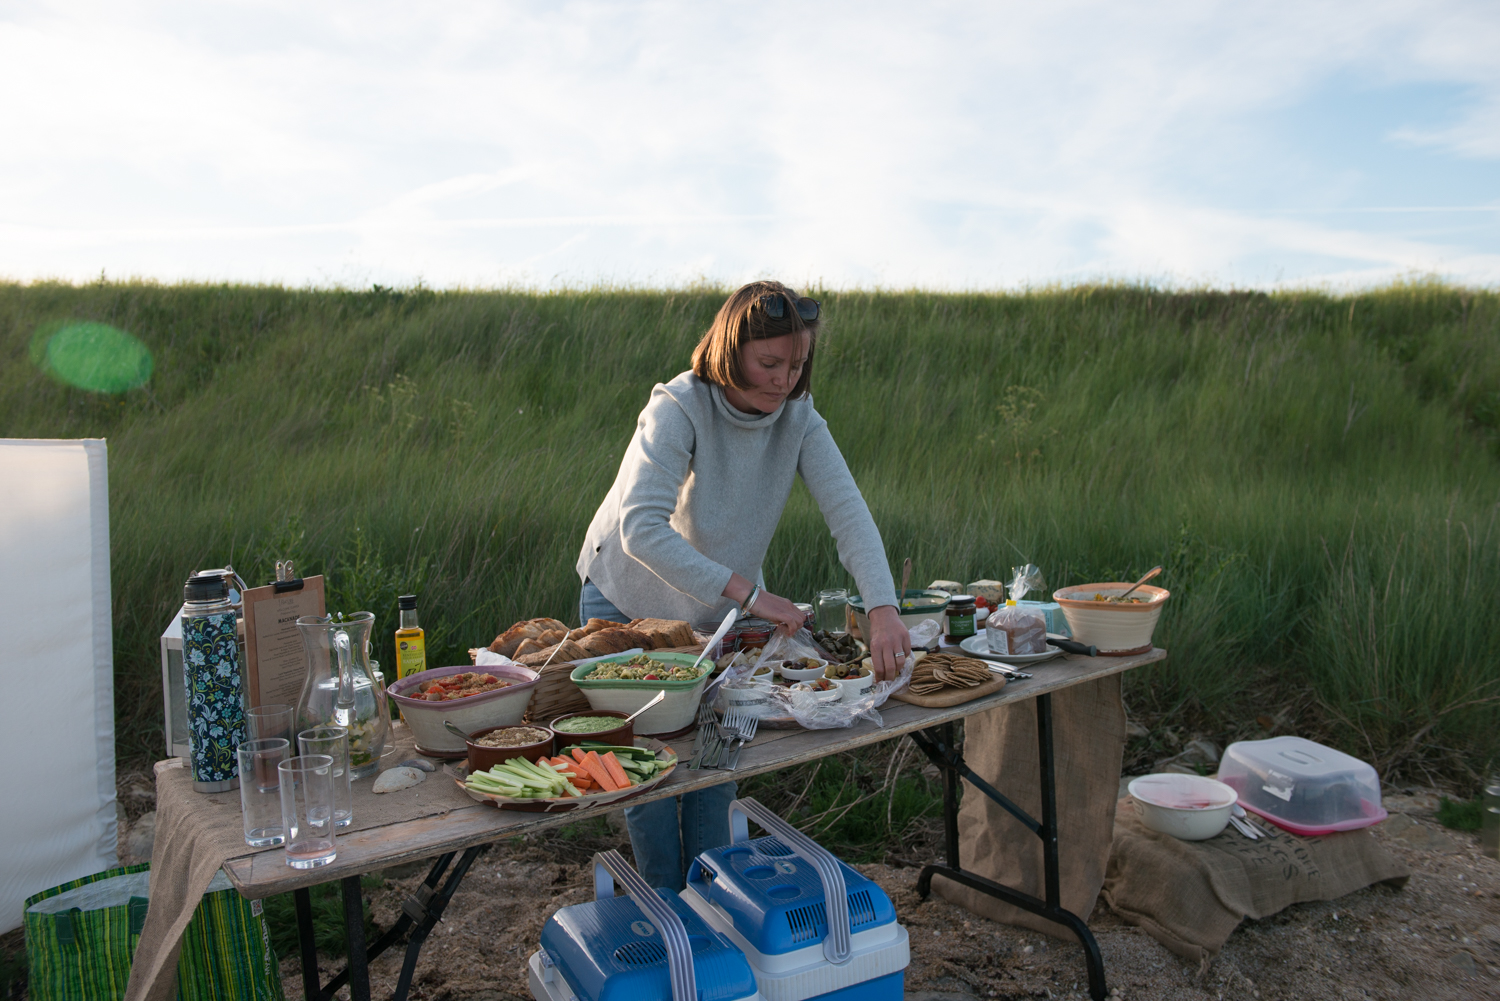 The Nature Sessions, a feast on the beach provided by Macknade, beach picnic